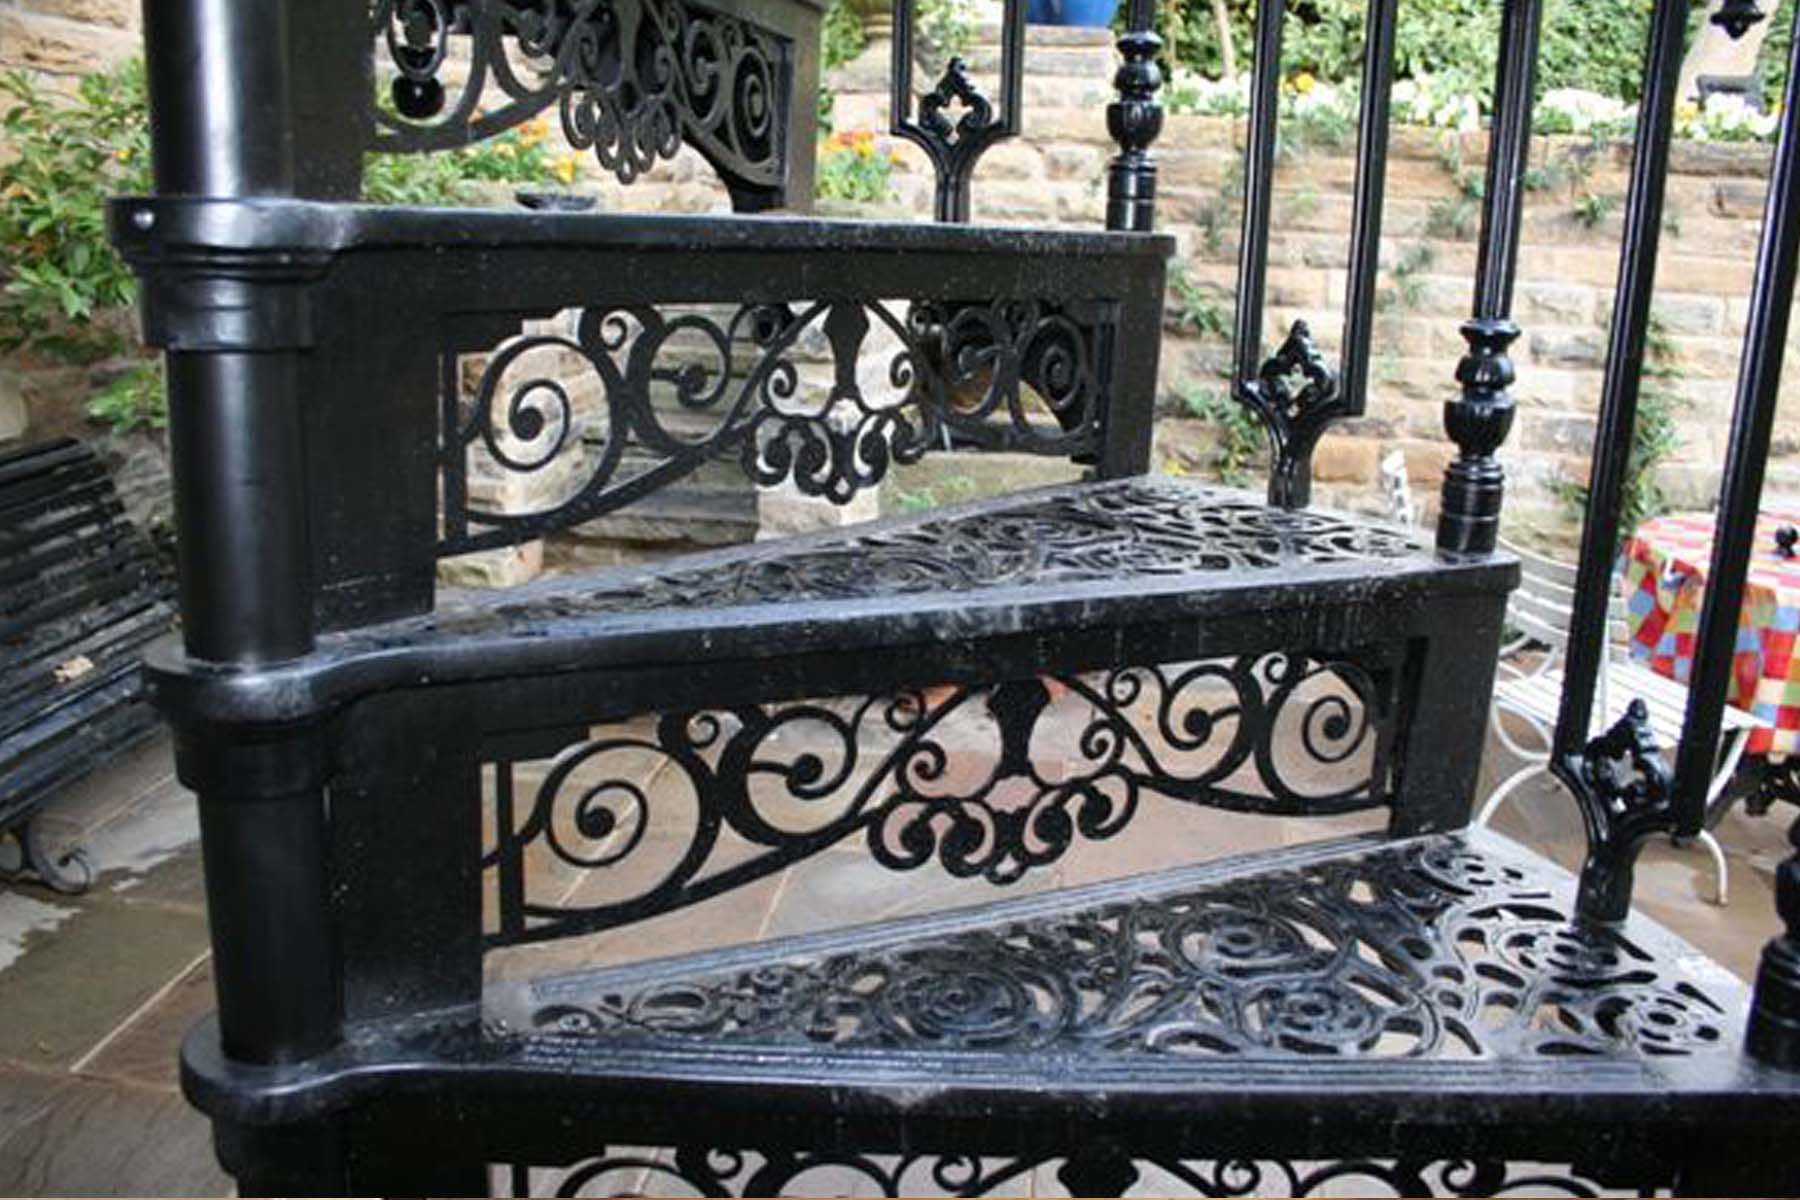 Decorative riser for Victorian spiral staircase